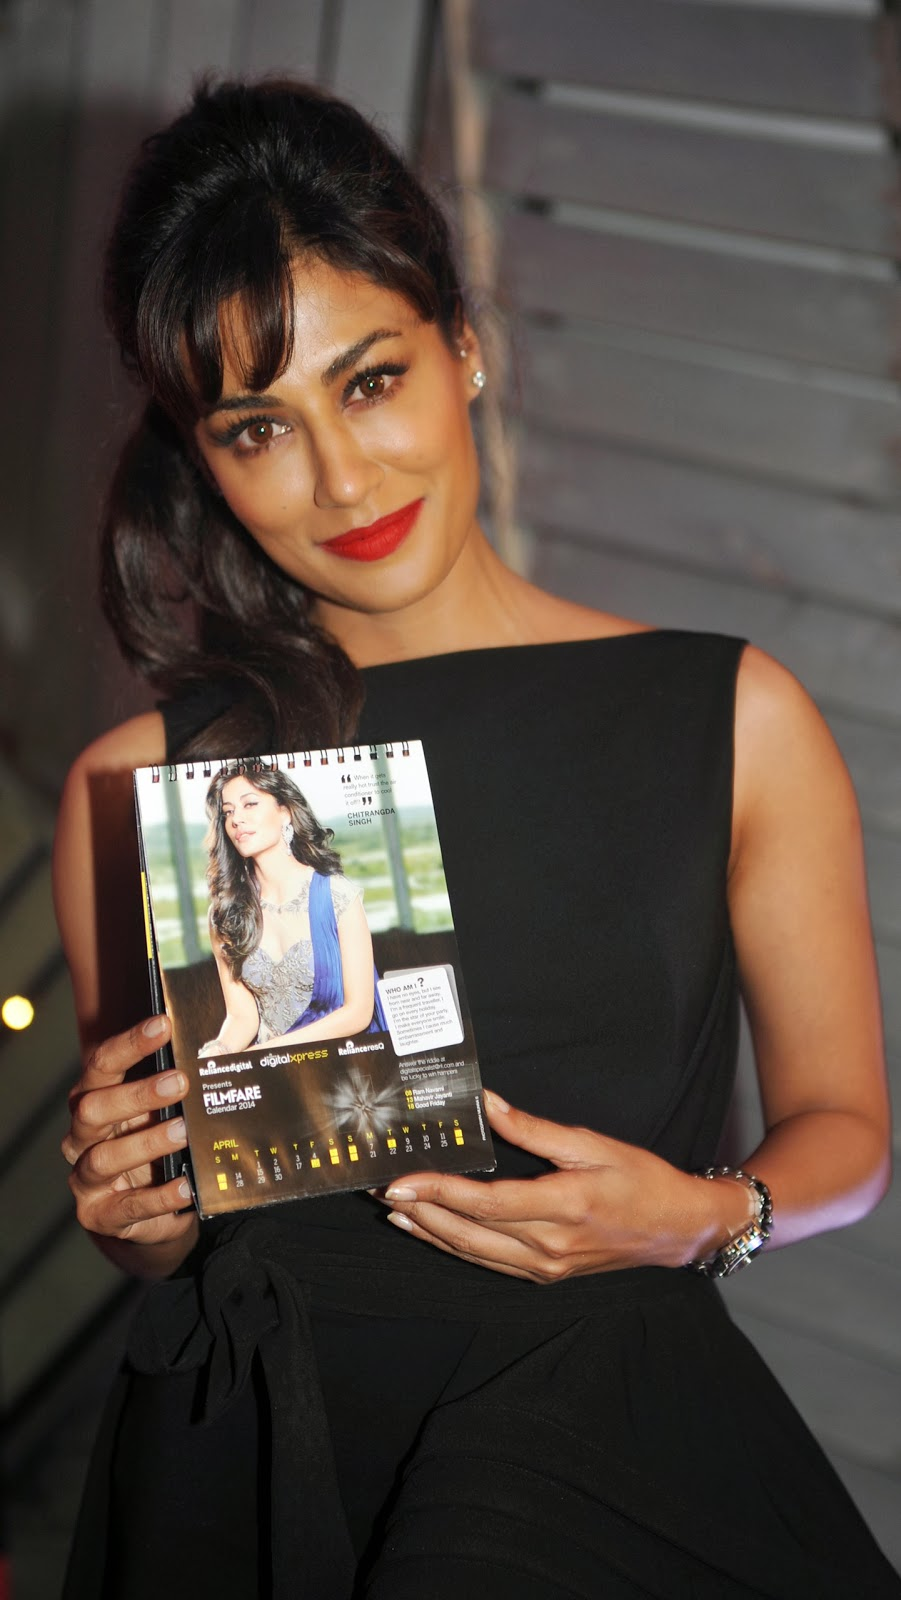 India, Bollywood, Film, Actress Chitrangda Singh, Launch, Reliance, Digital, Filmfare, Calendar,  Showbiz, Auriga Lounge, Mumbai, Movie,